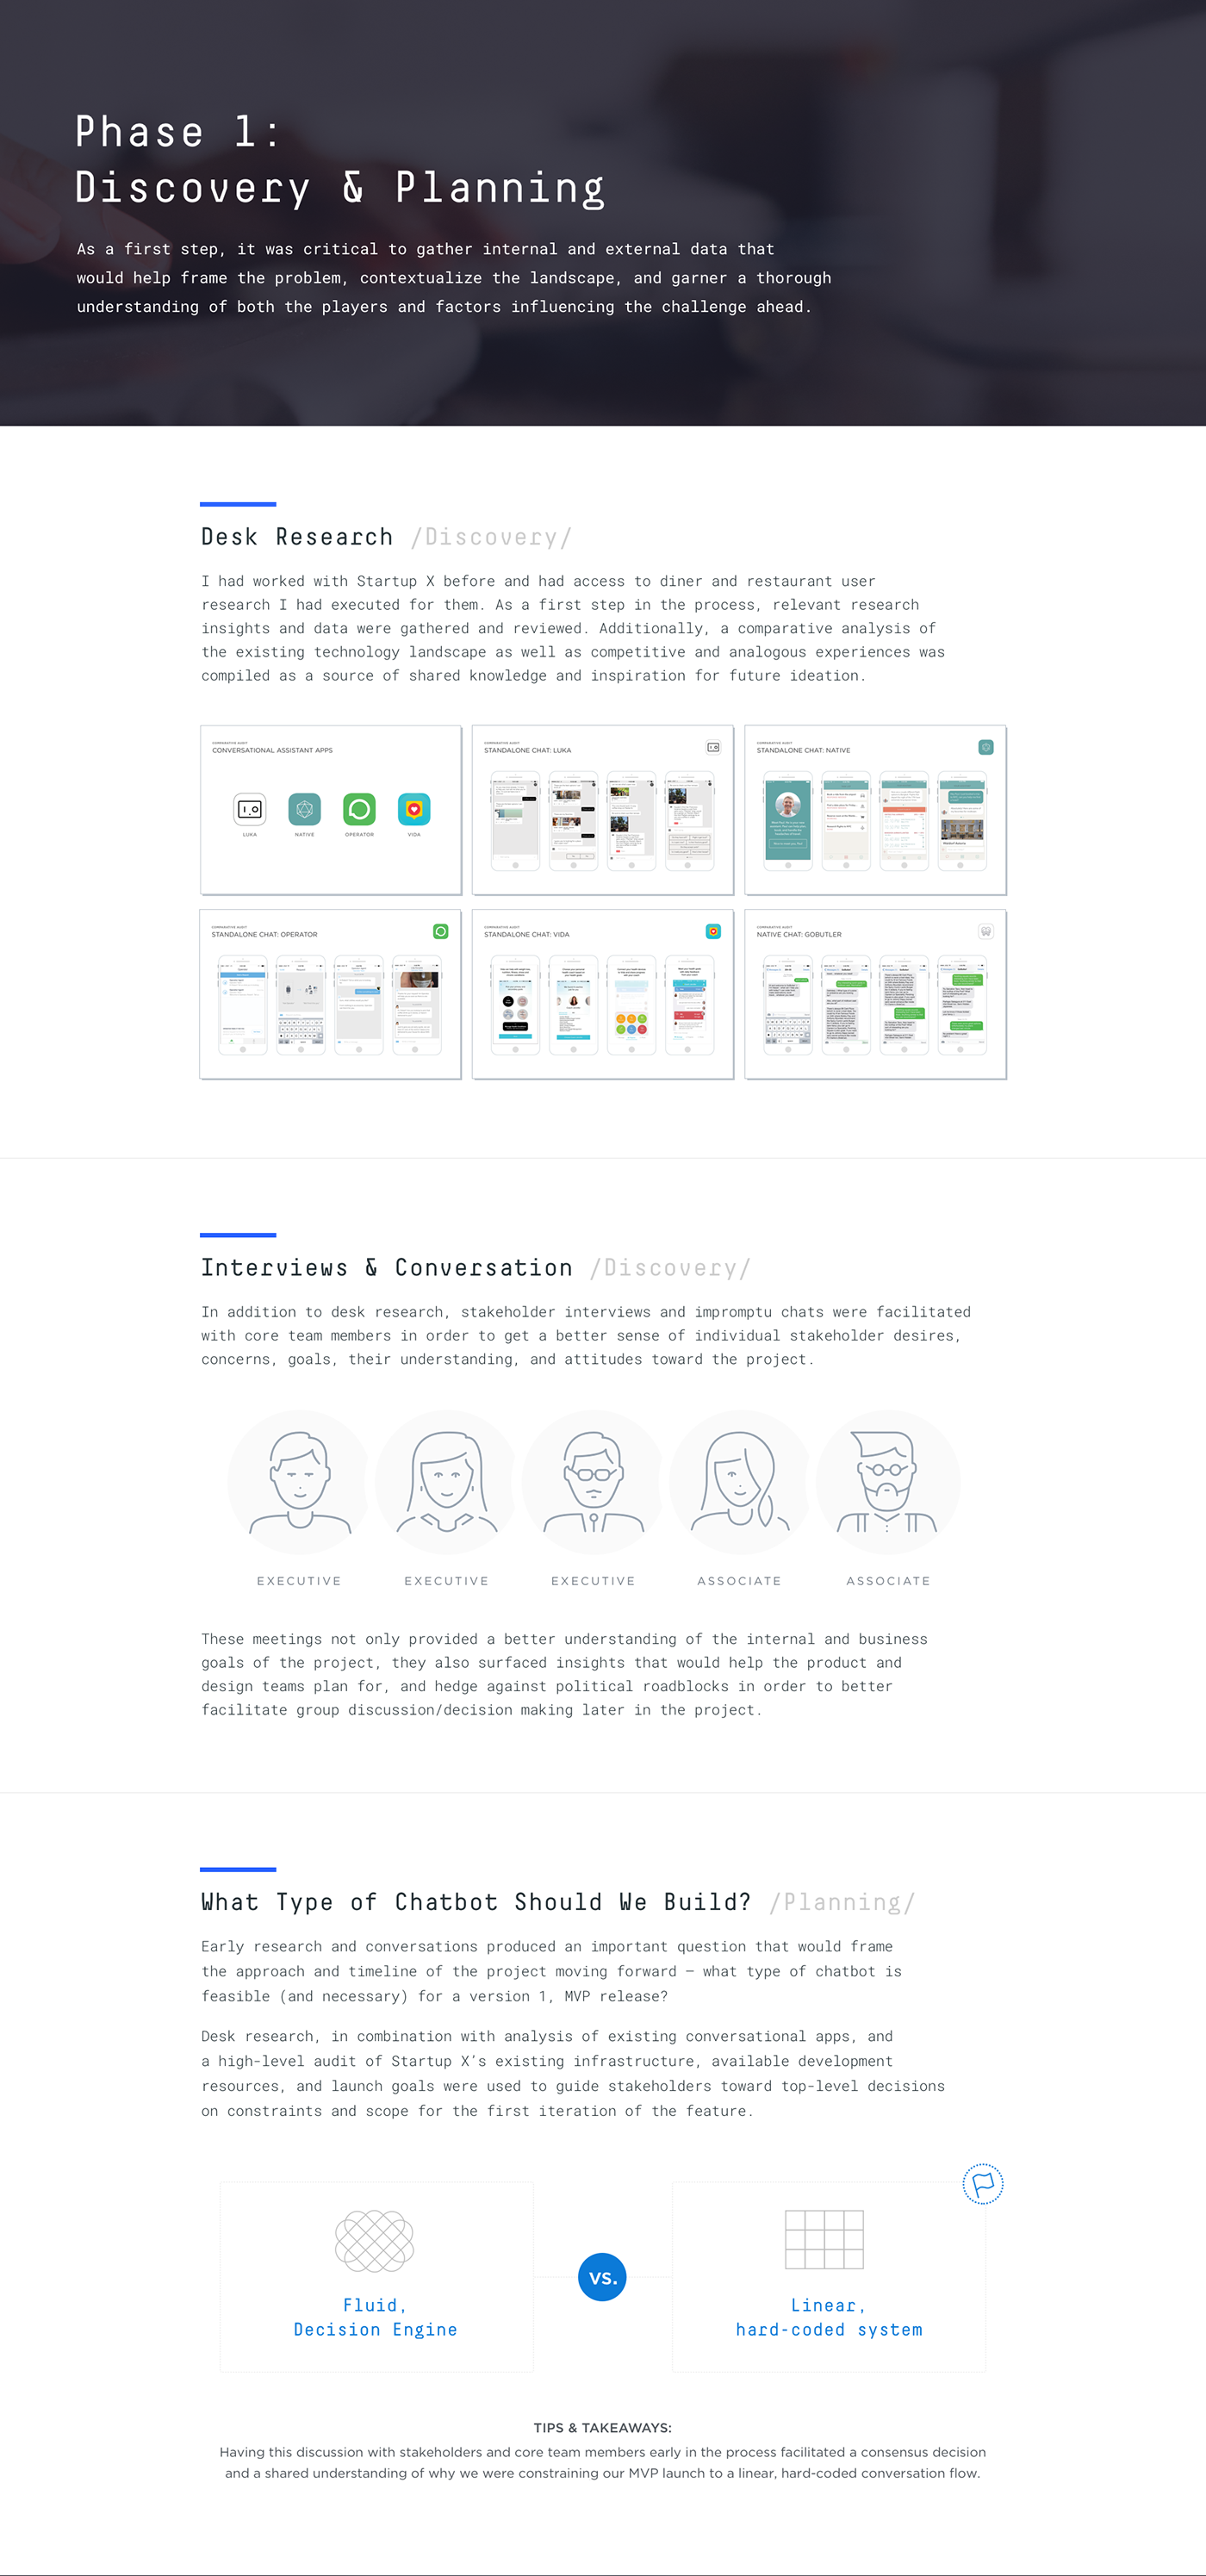 ux user experience Chat Chatbot bot messaging design process conversational ui UI chat bot